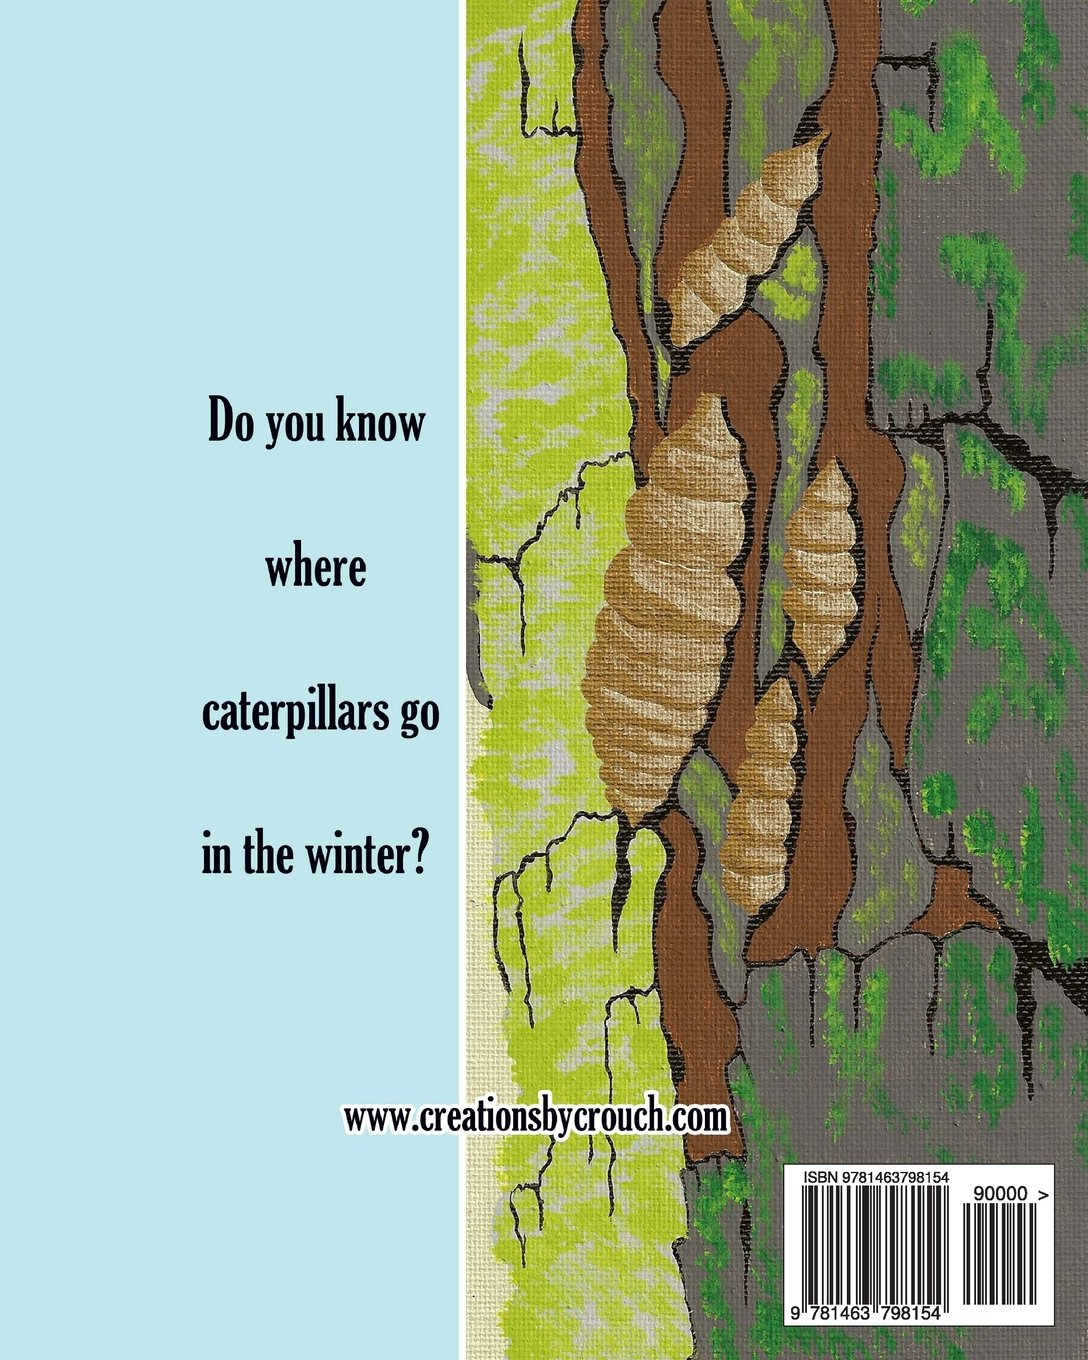 The Dance of the Caterpillars Bilingual German English (German and English Edition)